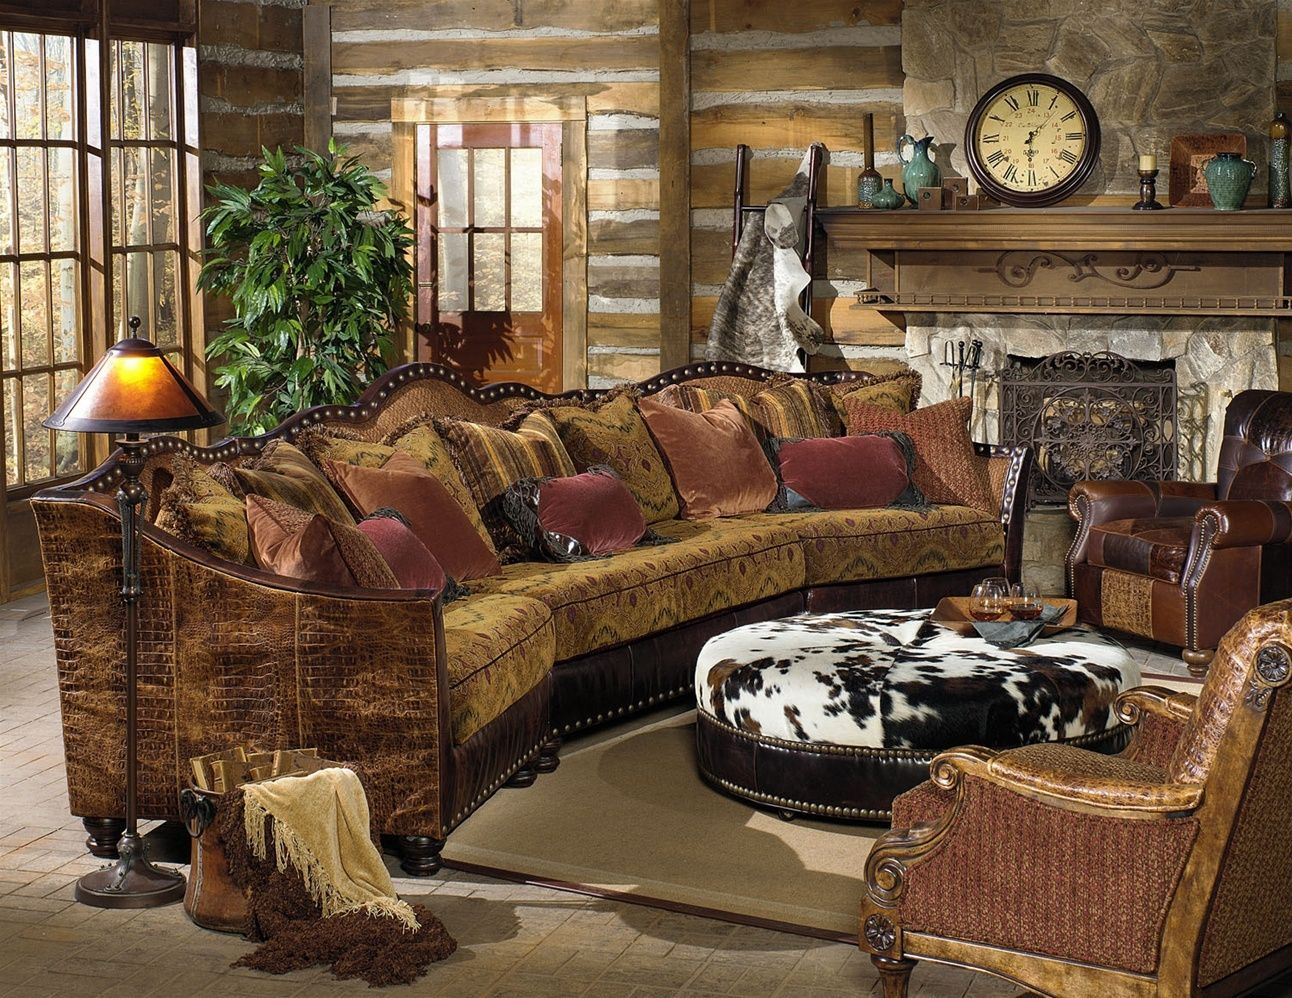 Custom Made Living Room Furniture Decorating Ideas For With Light Gray Walls Western Family